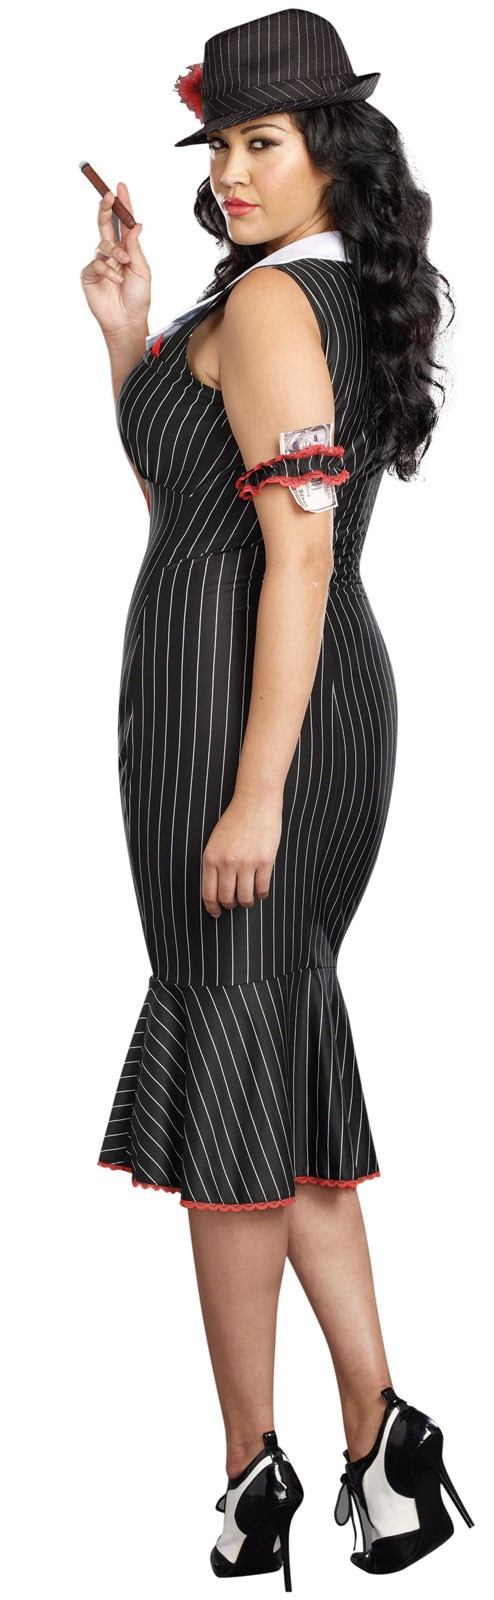 Deadly dames gangster plus size costume for adults